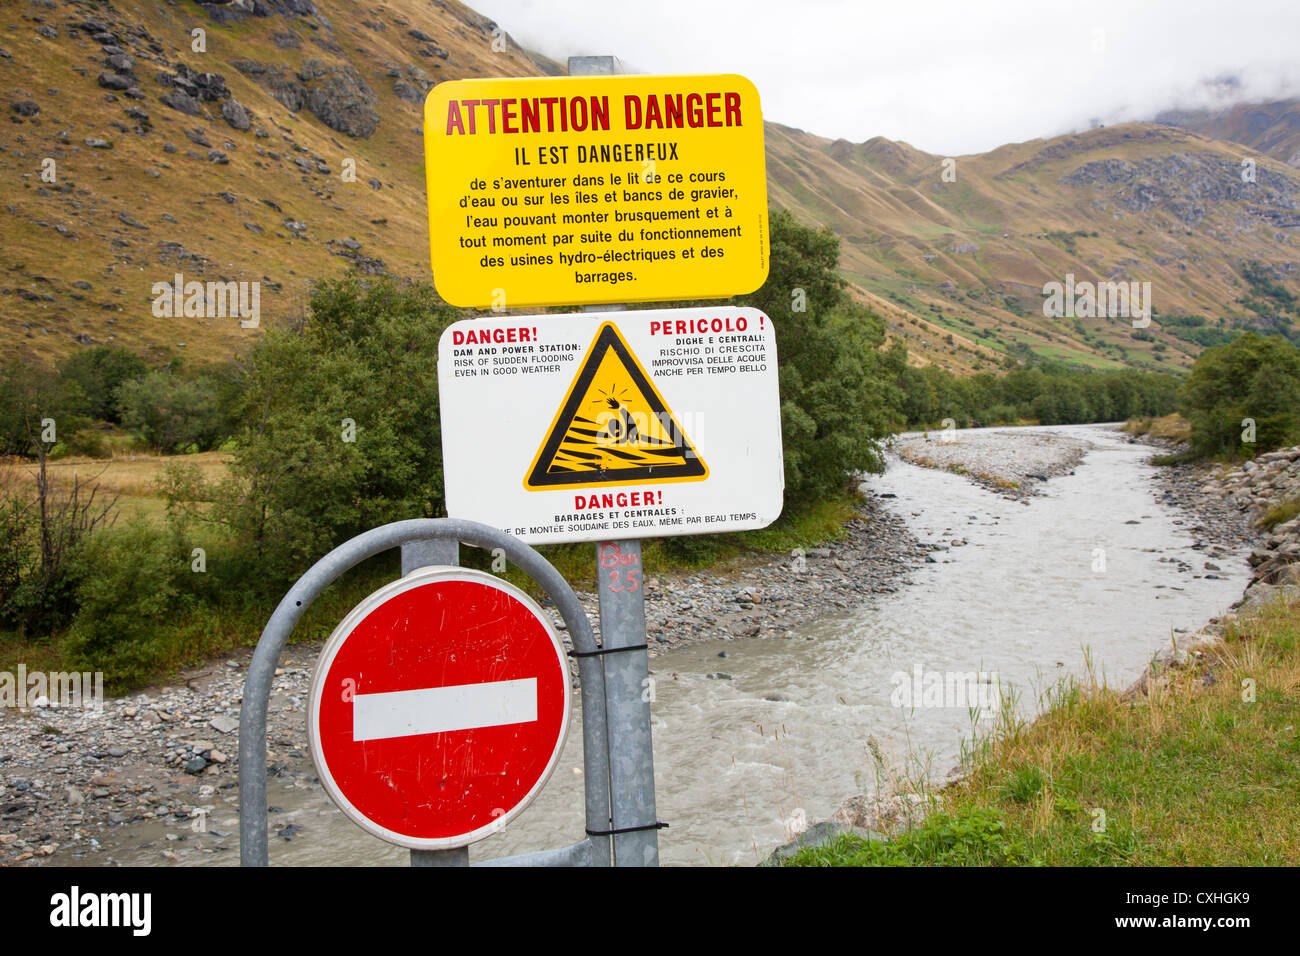 Danger do not swim in water sign due to hydro electricity production - Savoie, France - Stock Image